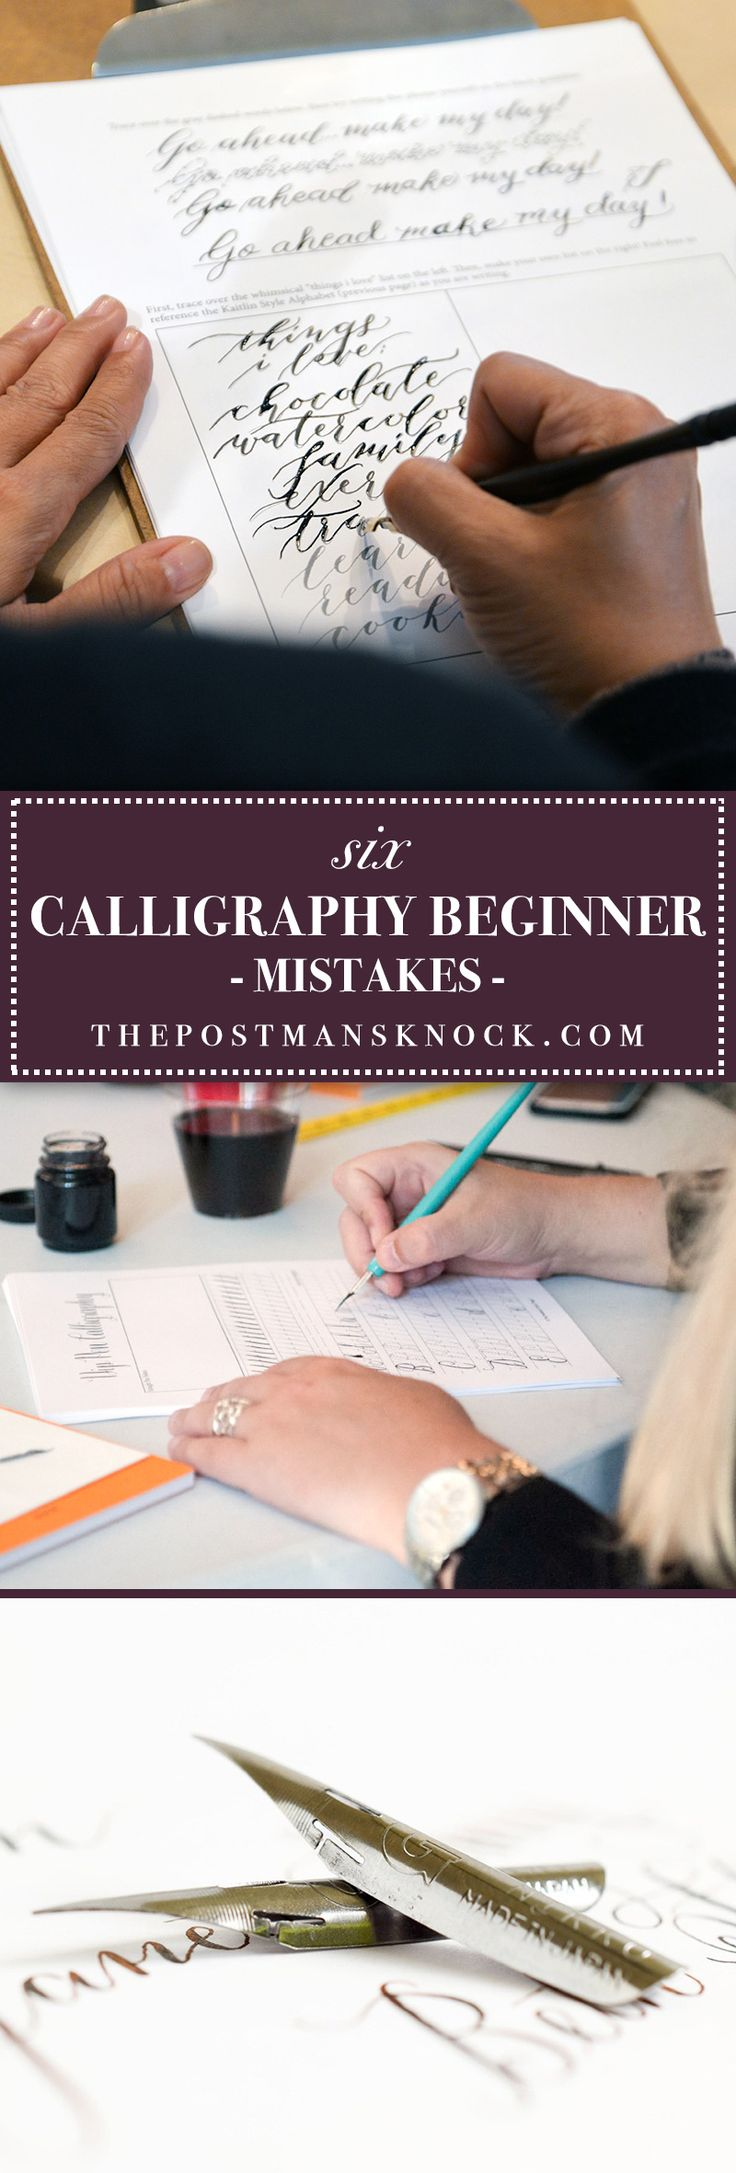 Calligraphy beginners will find this post to be very helpful! It covers some of the pitfalls that those who are unfamiliar with using a dip pen can run into.